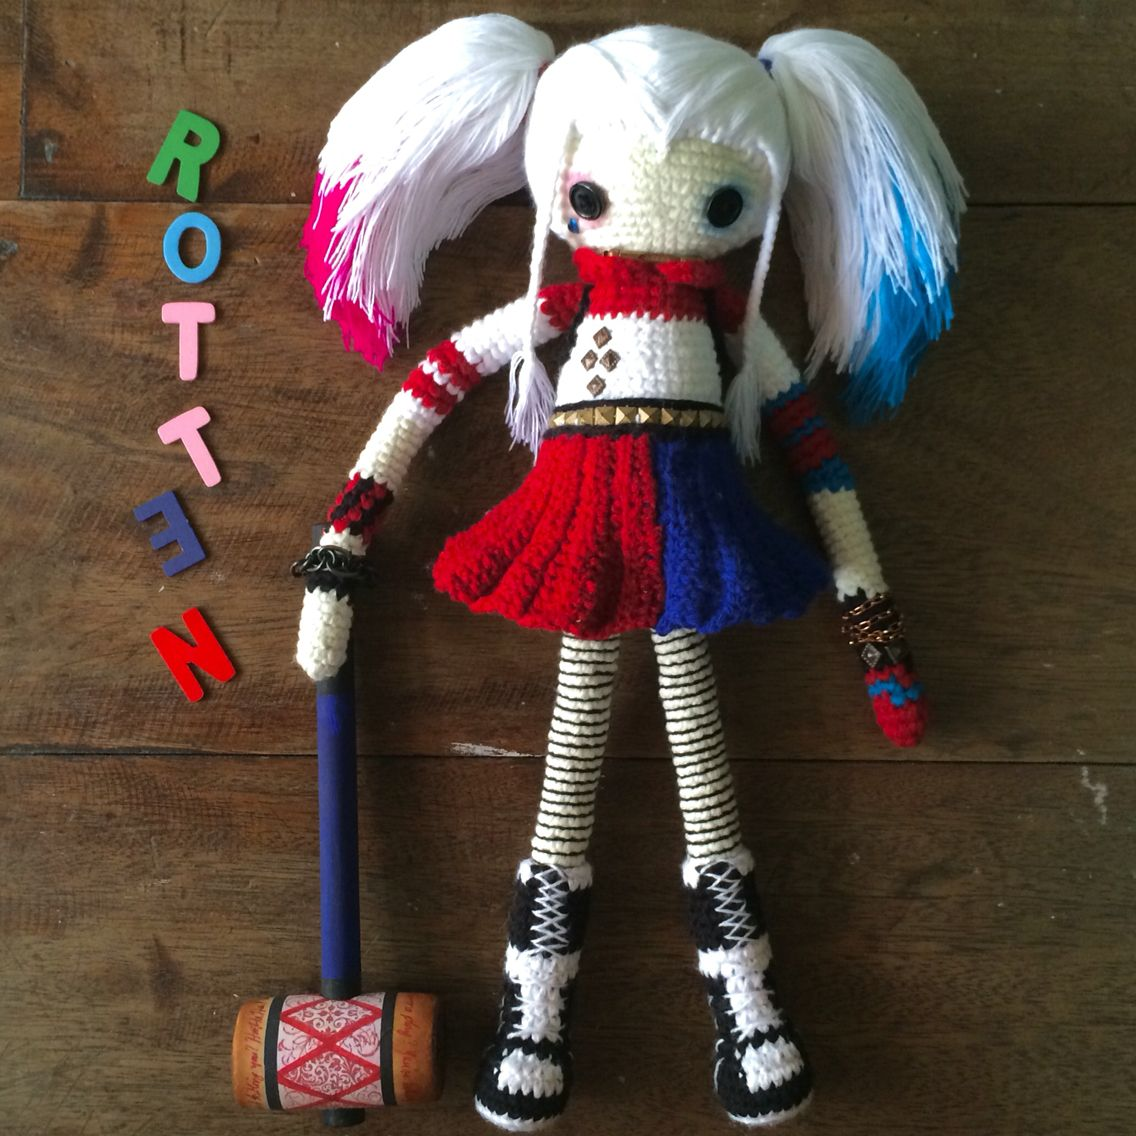 Harley Quinn crocheted art doll by Margaux Rull based on the character from DC and Suicide Squad